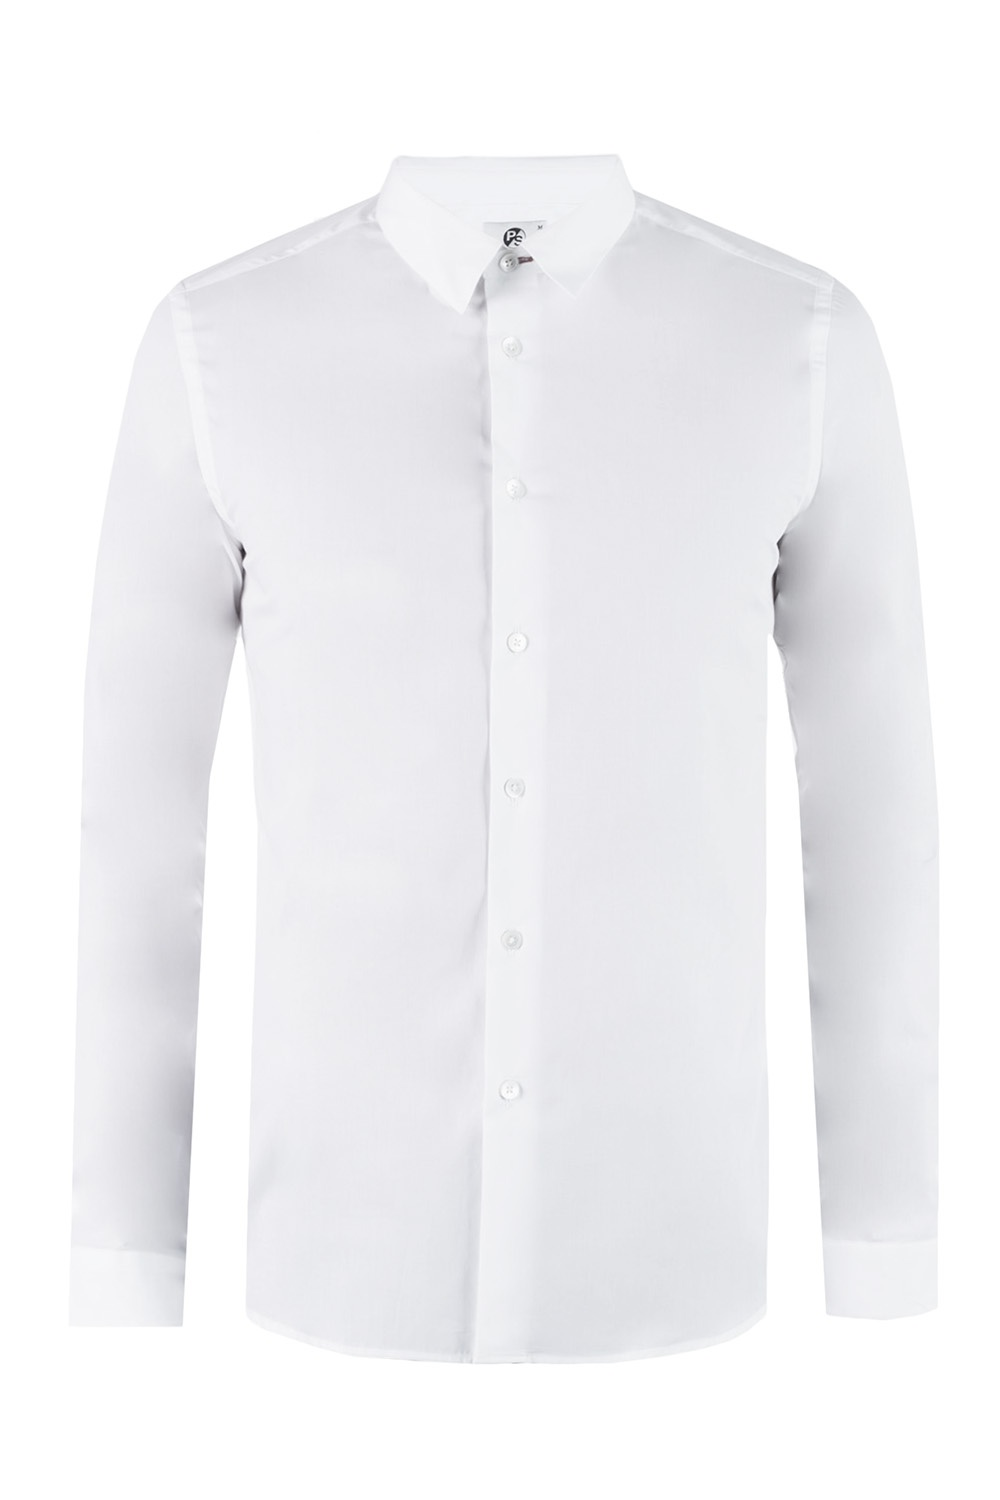 Paul Smith Fitted shirt